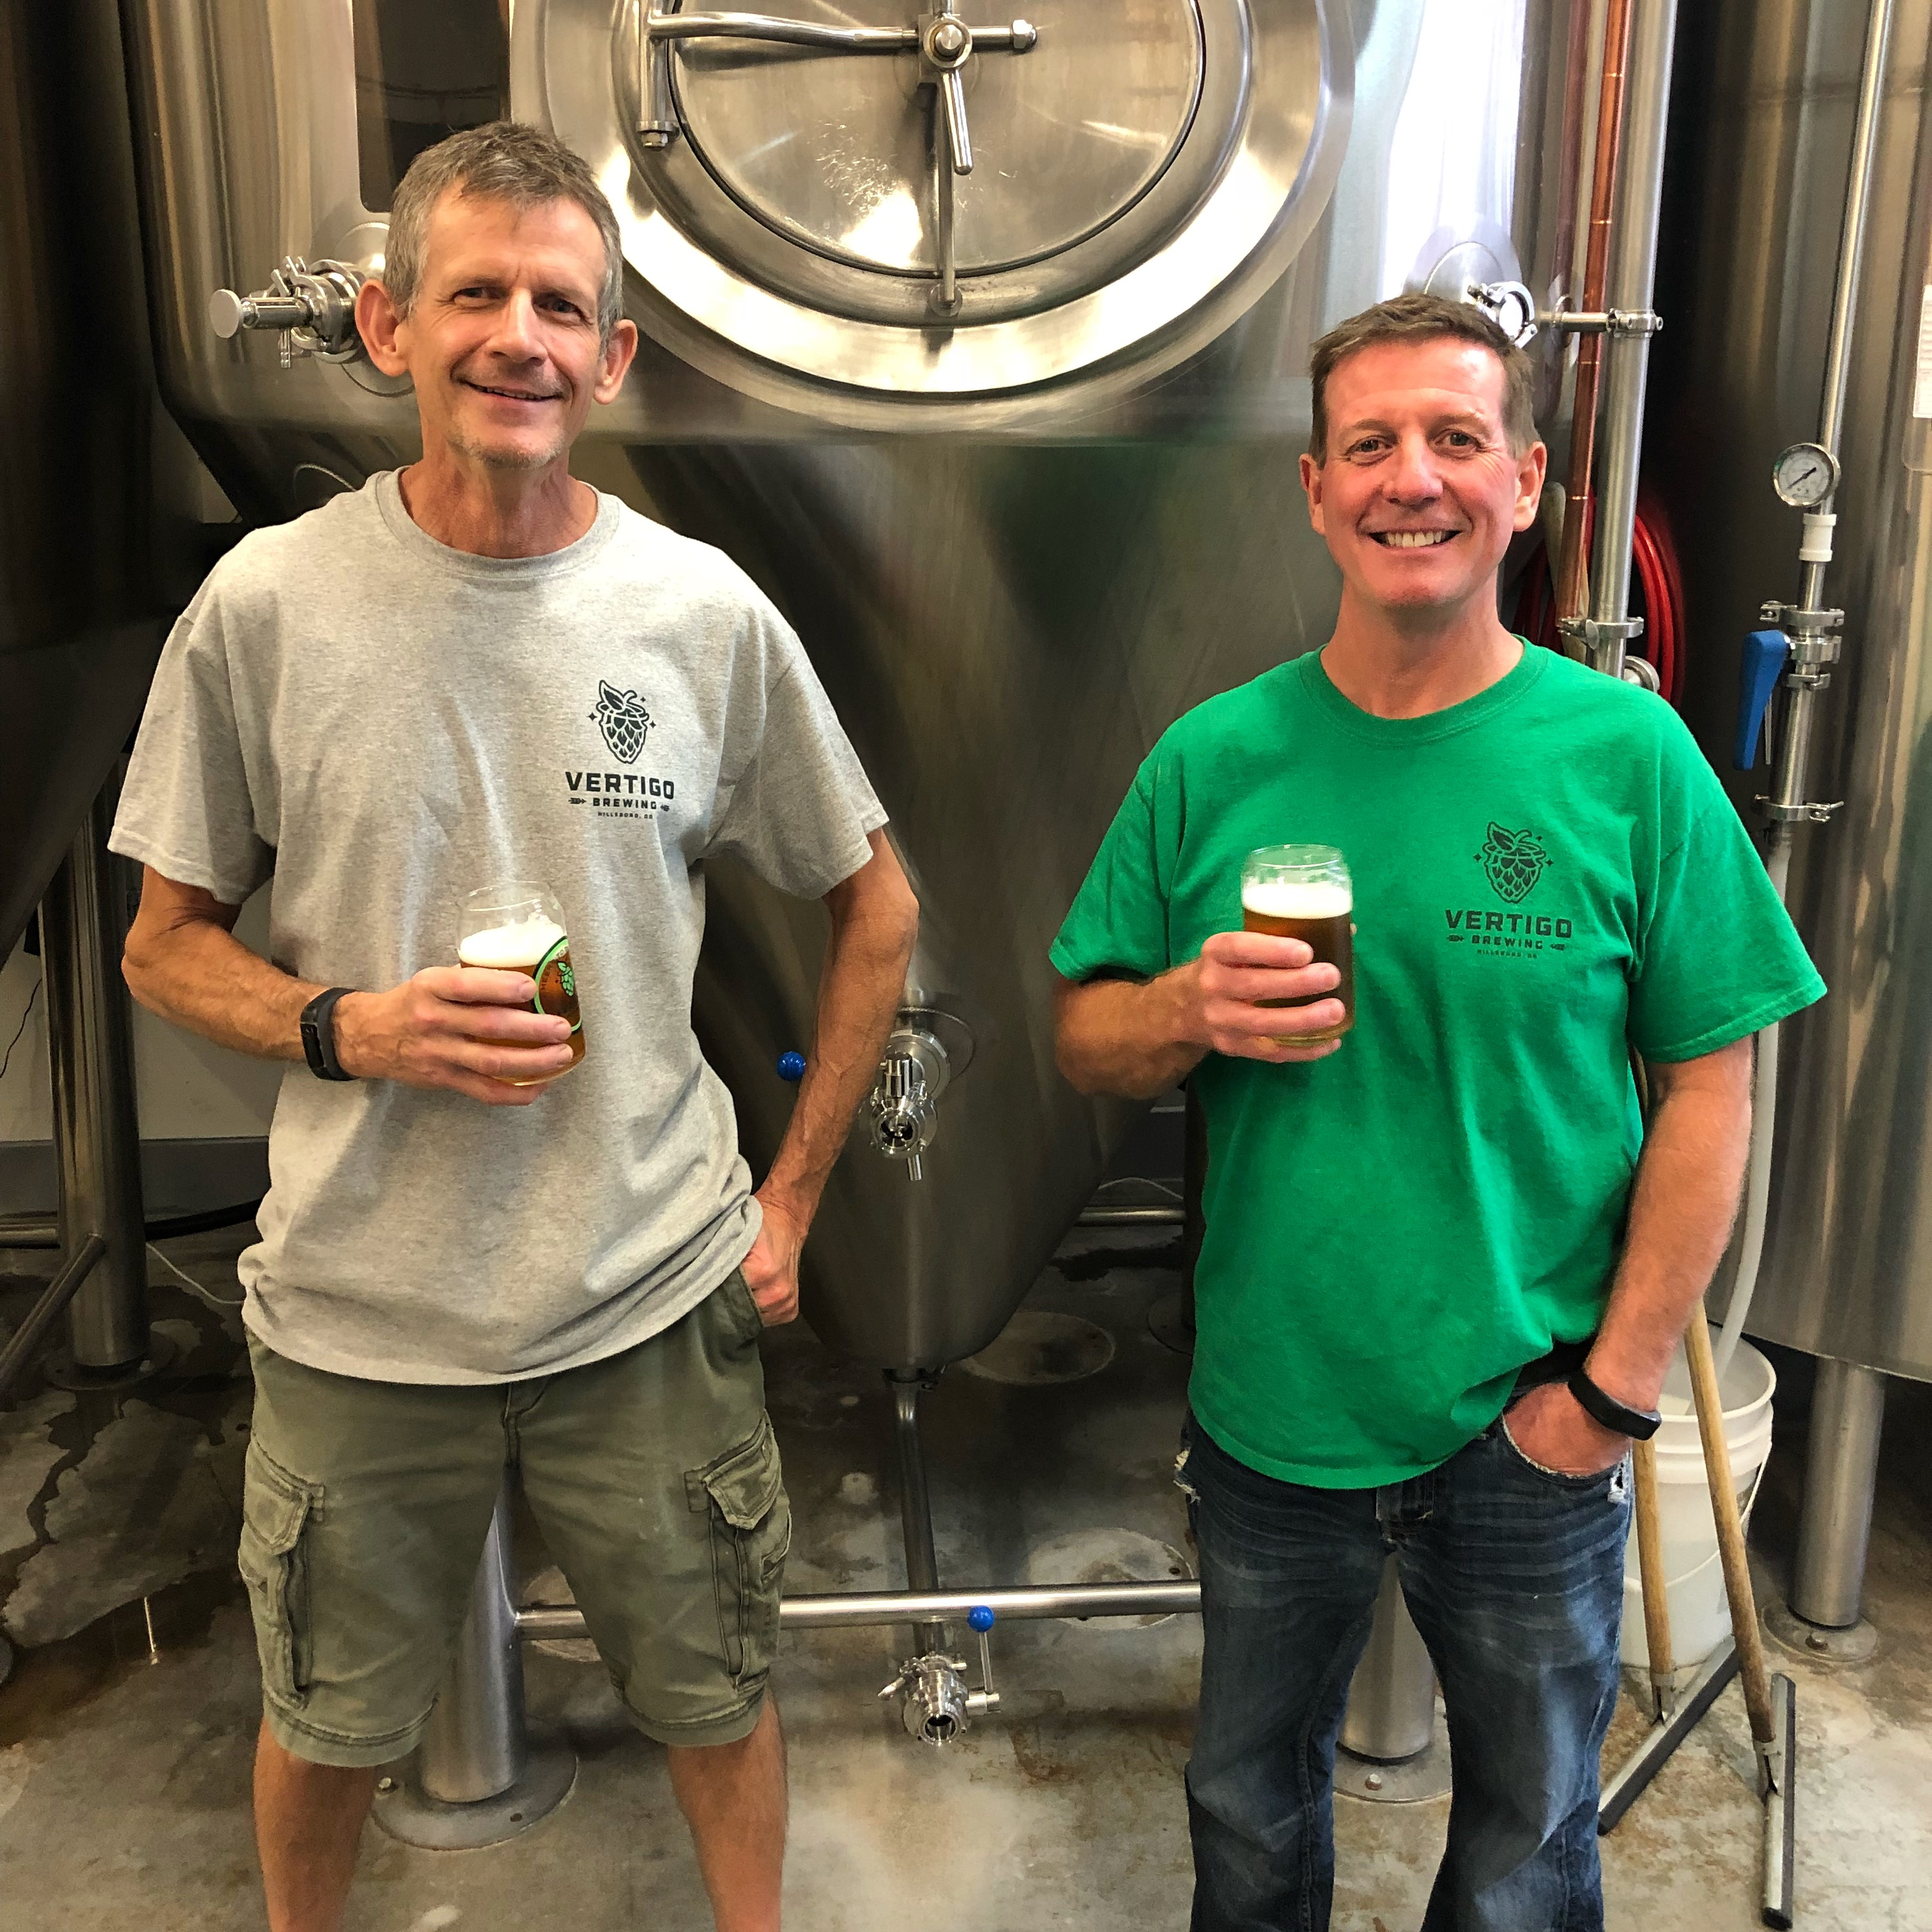 Mike Haines and Mike Kinion, co-founders of Vertigo Brewing.